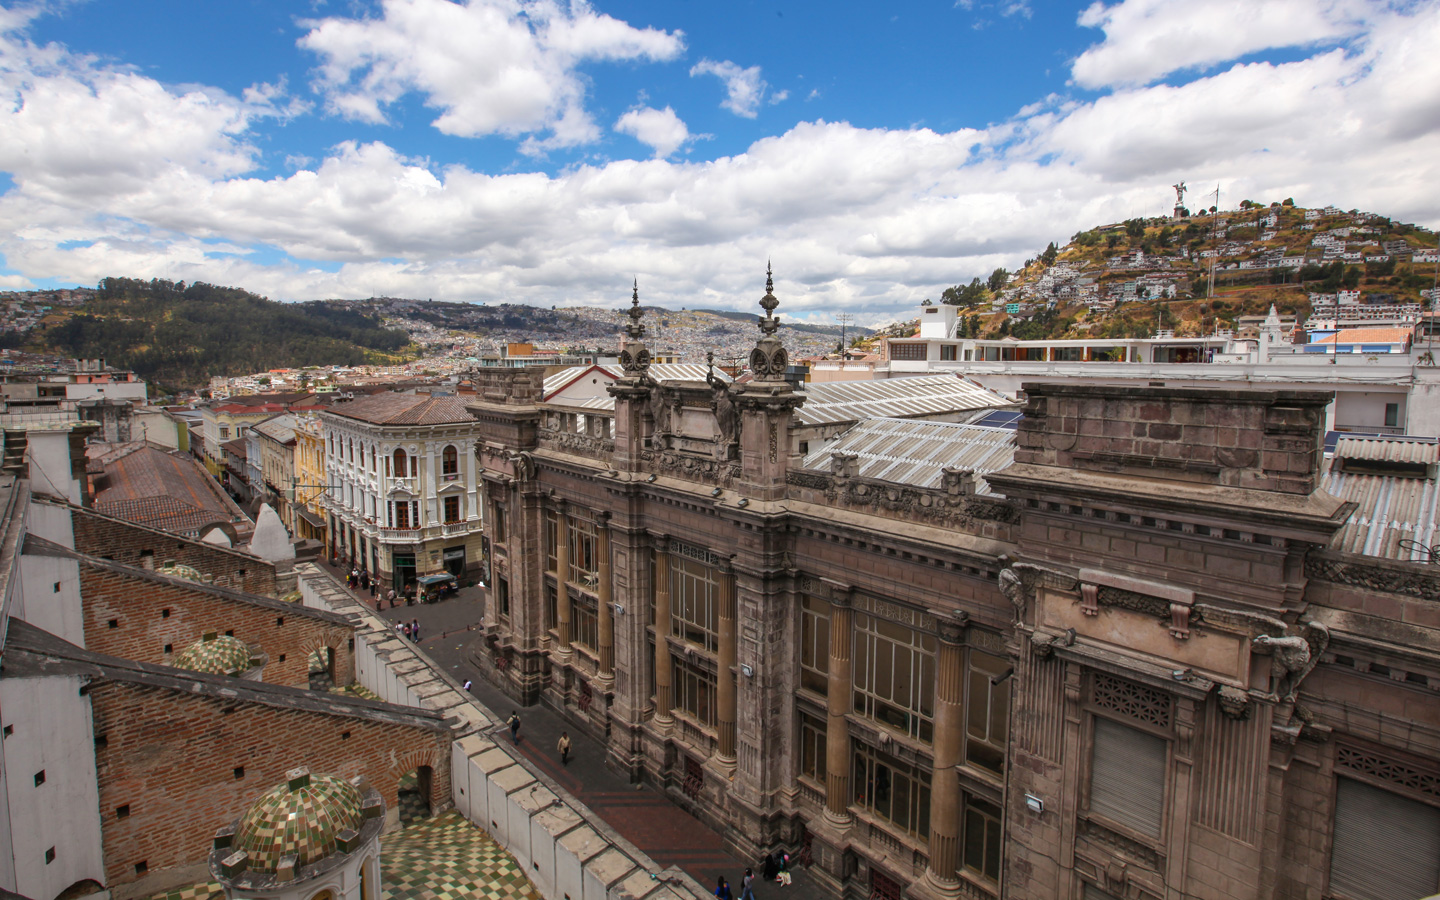 A view of the Calle de las 7 cruzes in the Historic Center of Quito